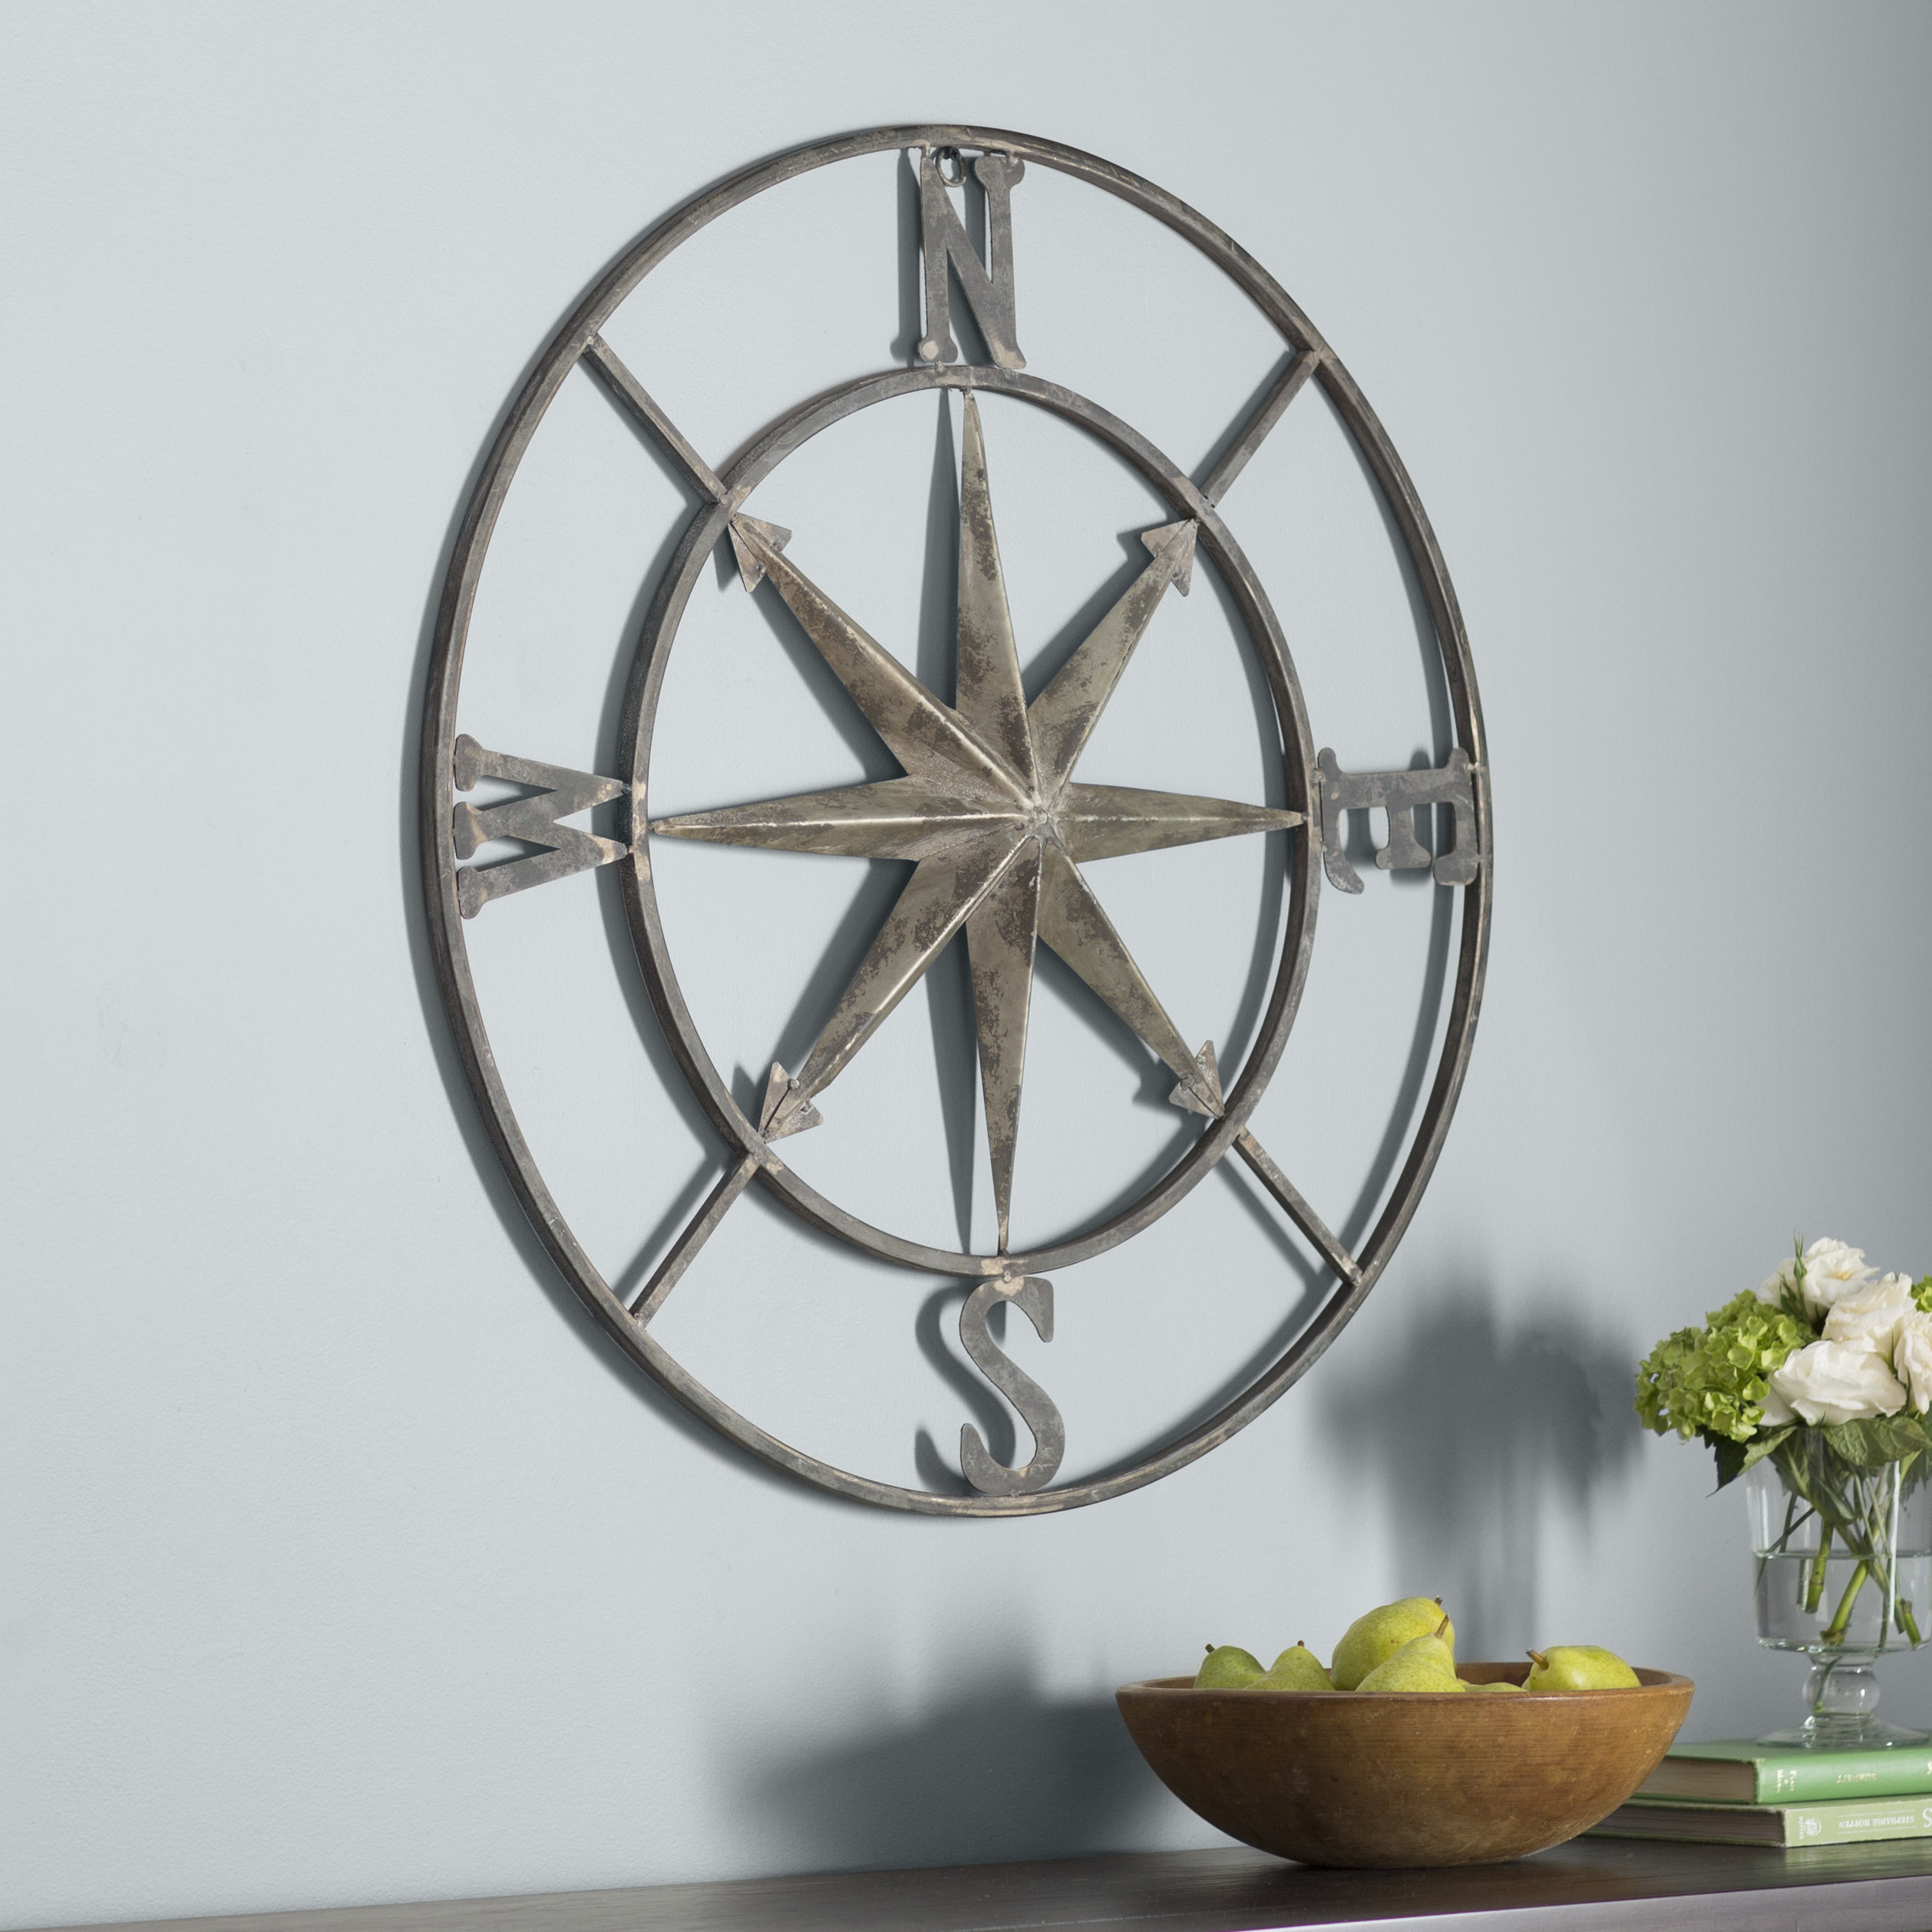 Three Posts Round Compass Wall Décor & Reviews | Wayfair with Round Compass Wall Decor (Image 28 of 30)